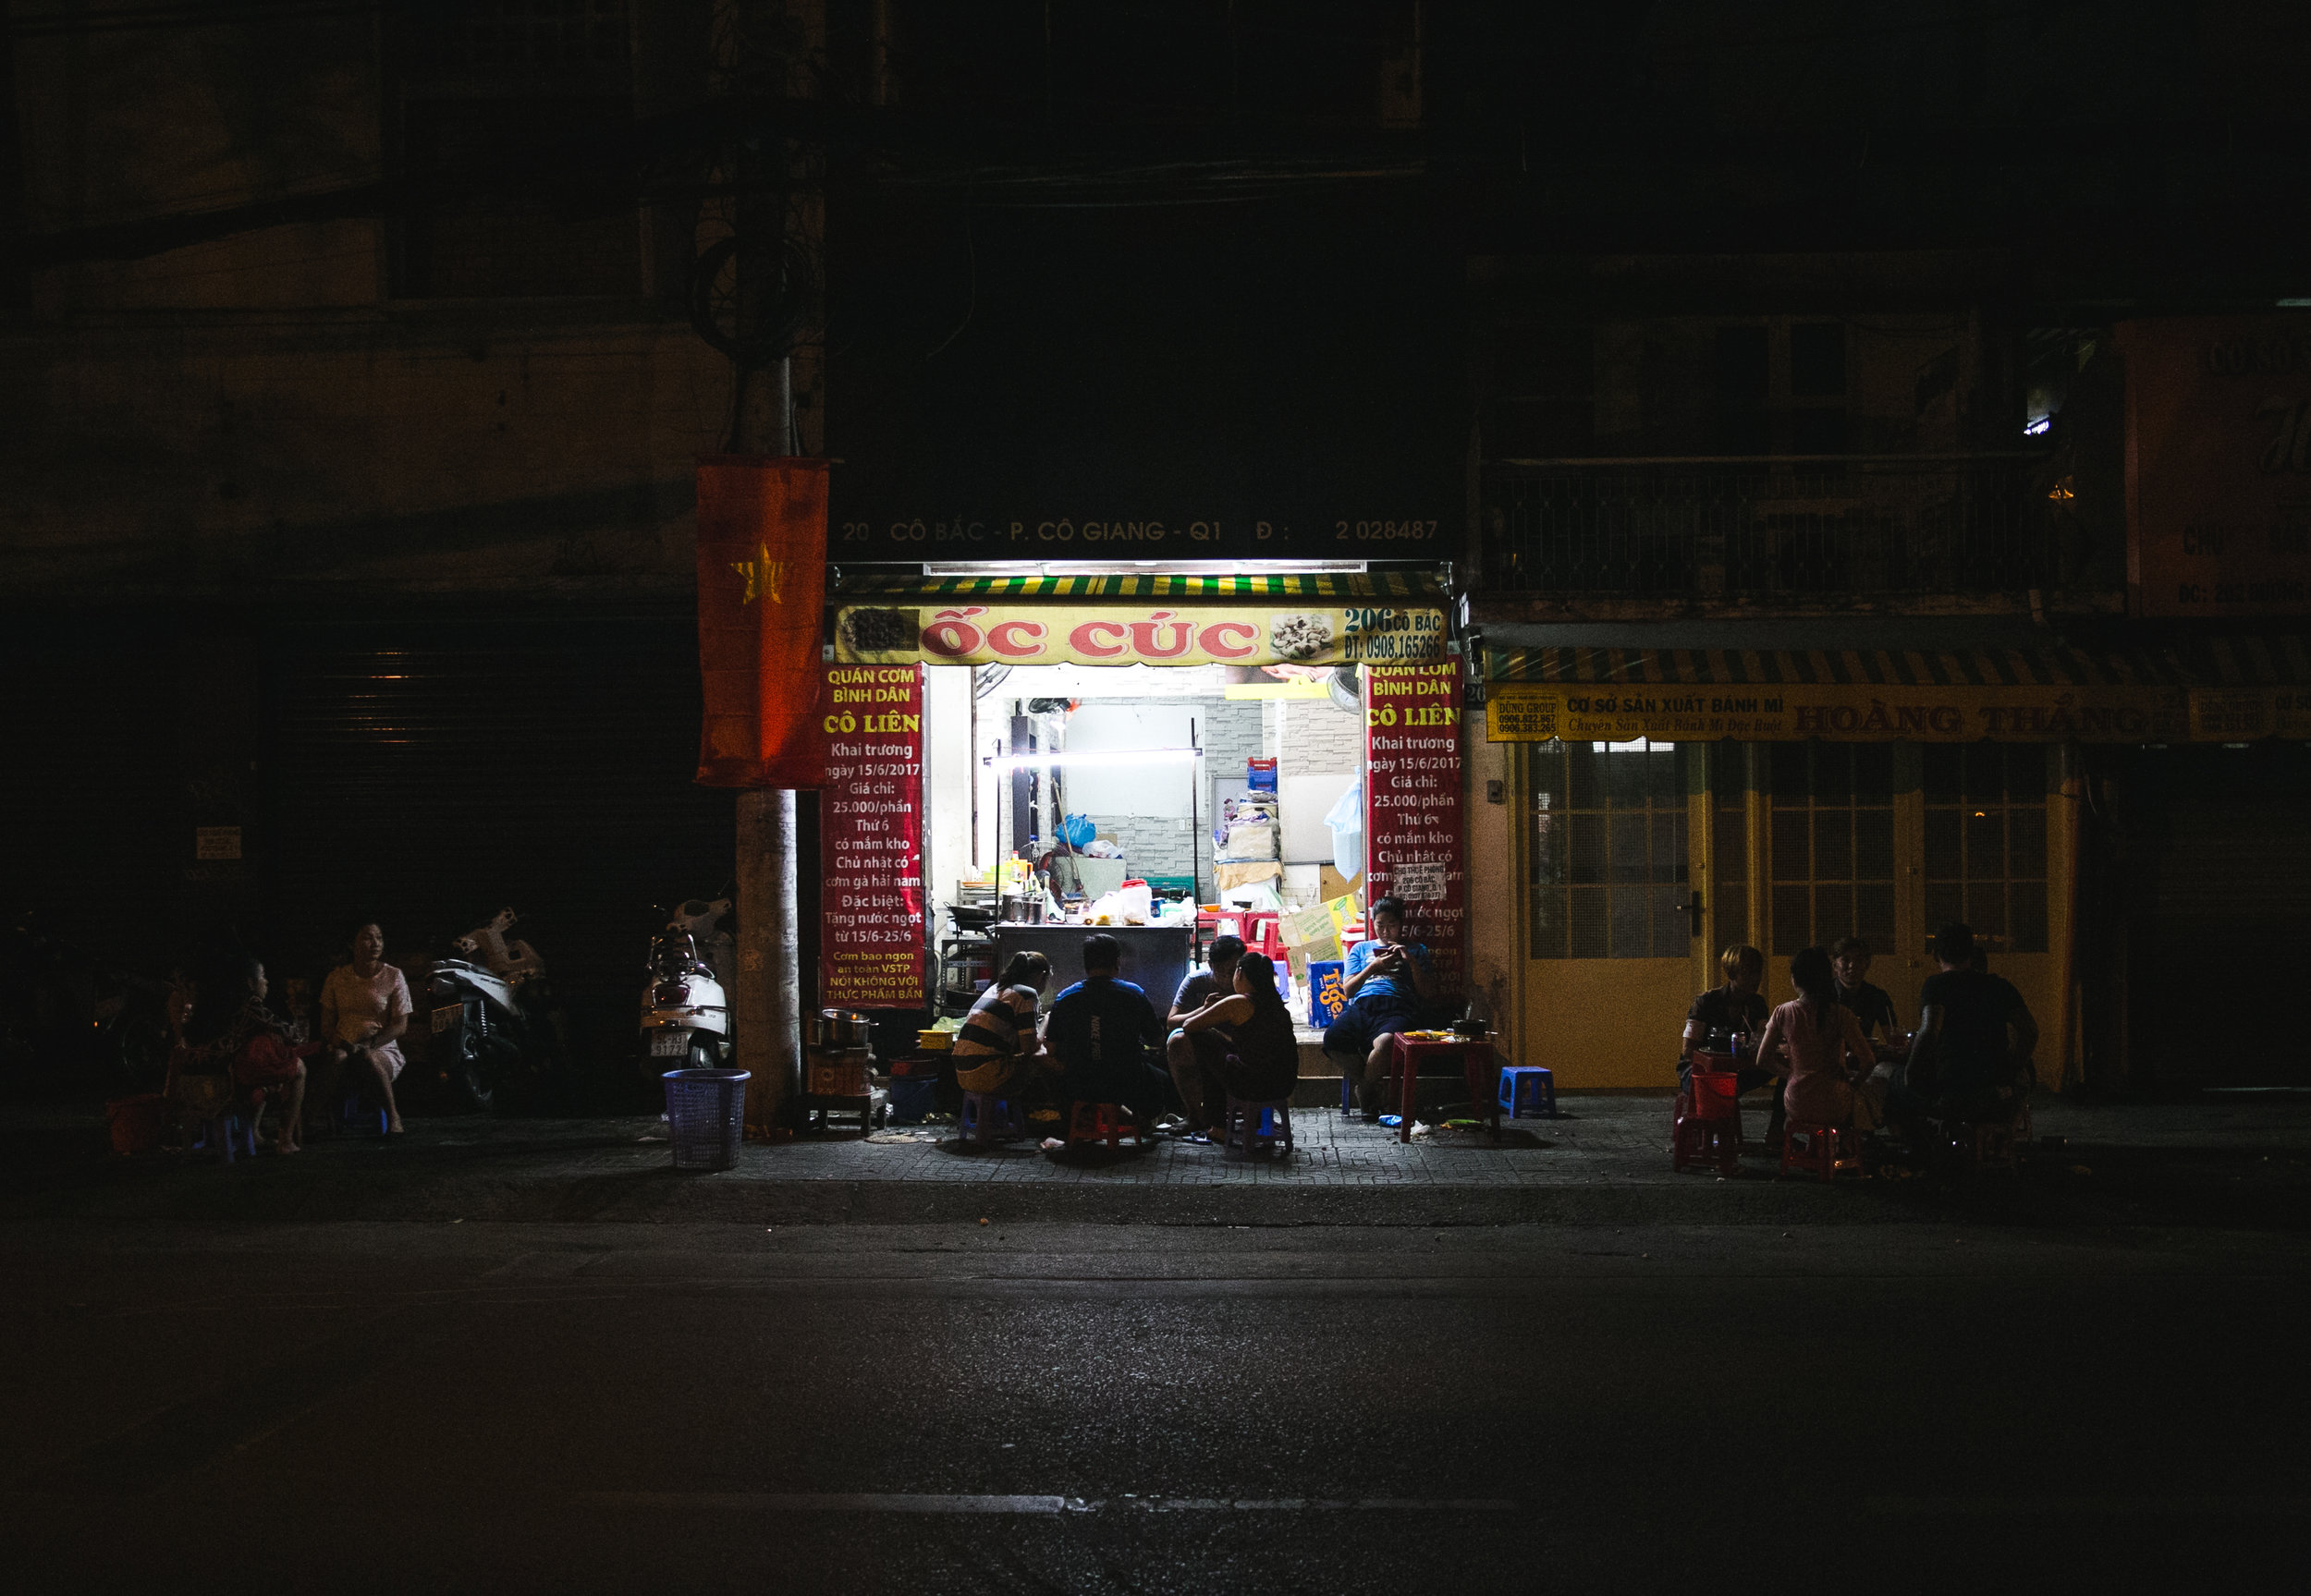 12:05am - Ho Chi Minh City, Vietnam